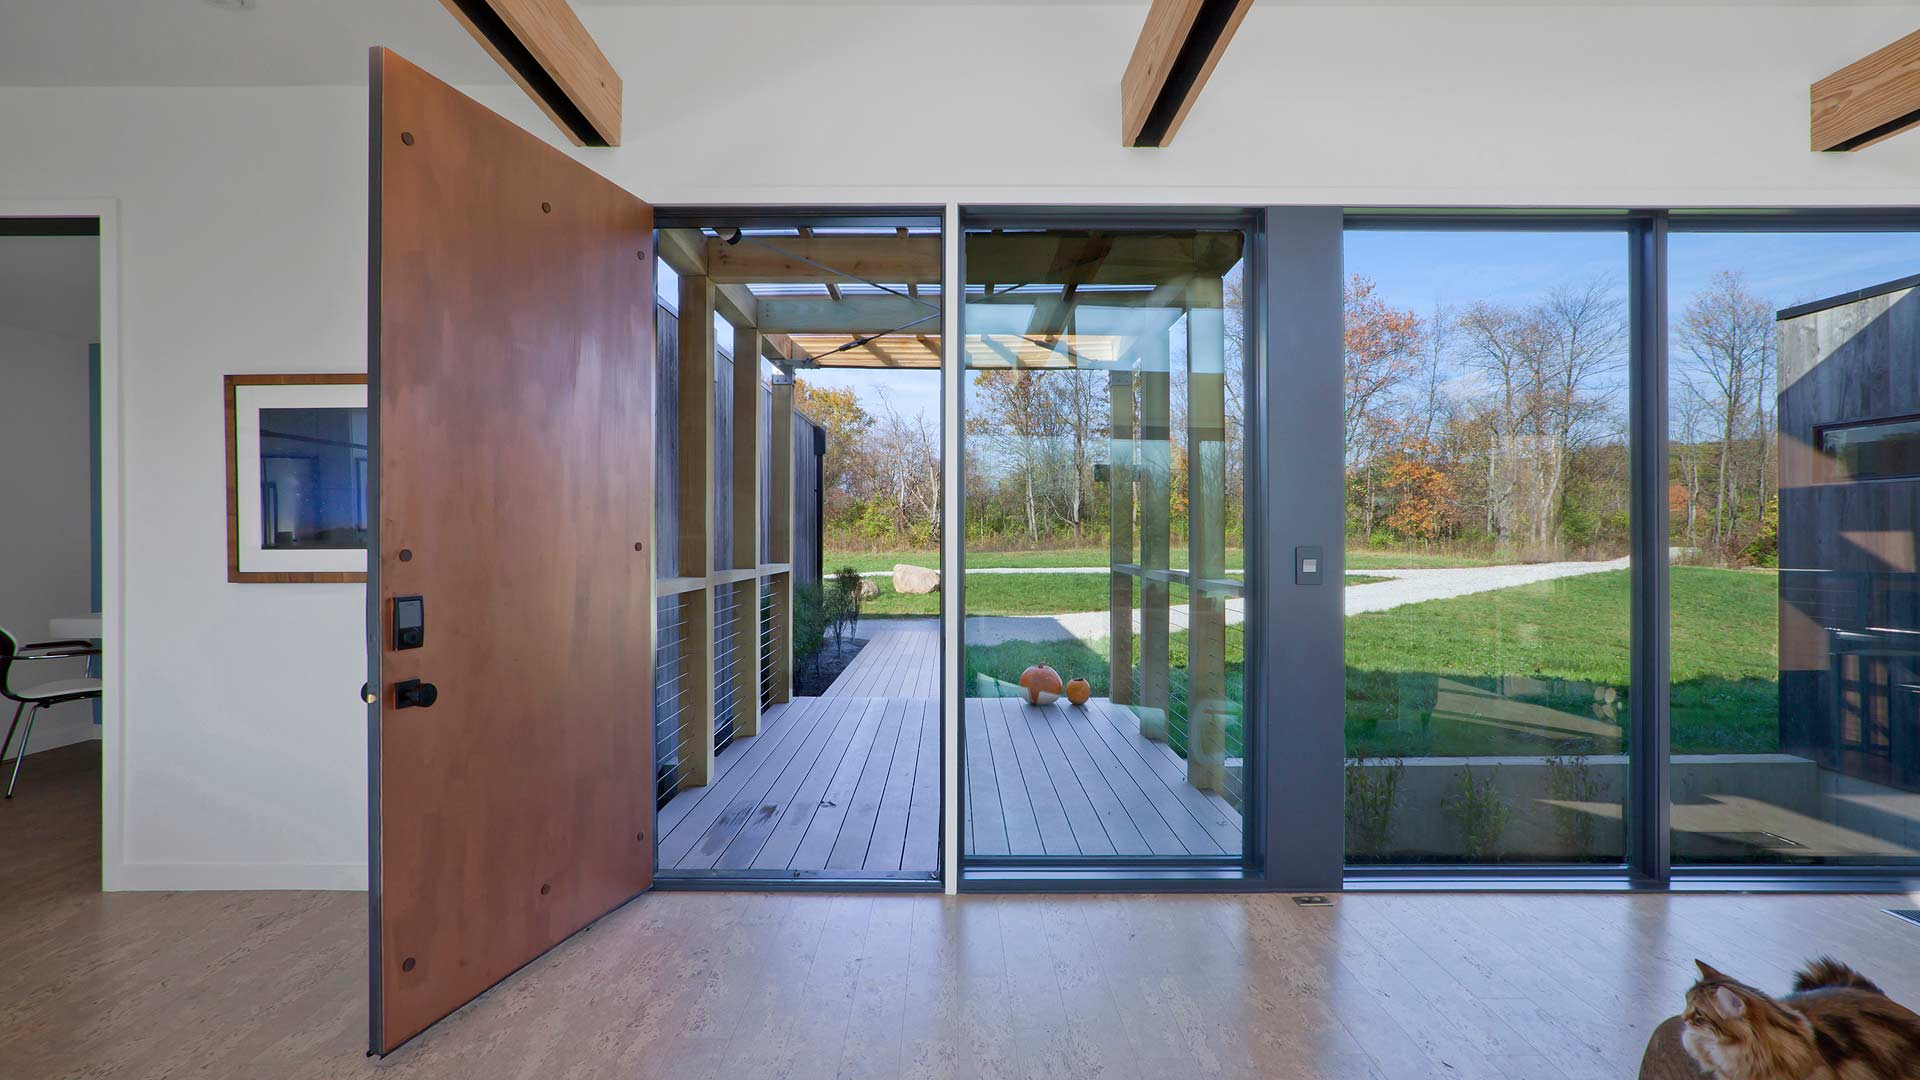 Interior View of Main Entry and Entry Bridge - New Modern House 1 (Copperwood) - Zionsville, IN